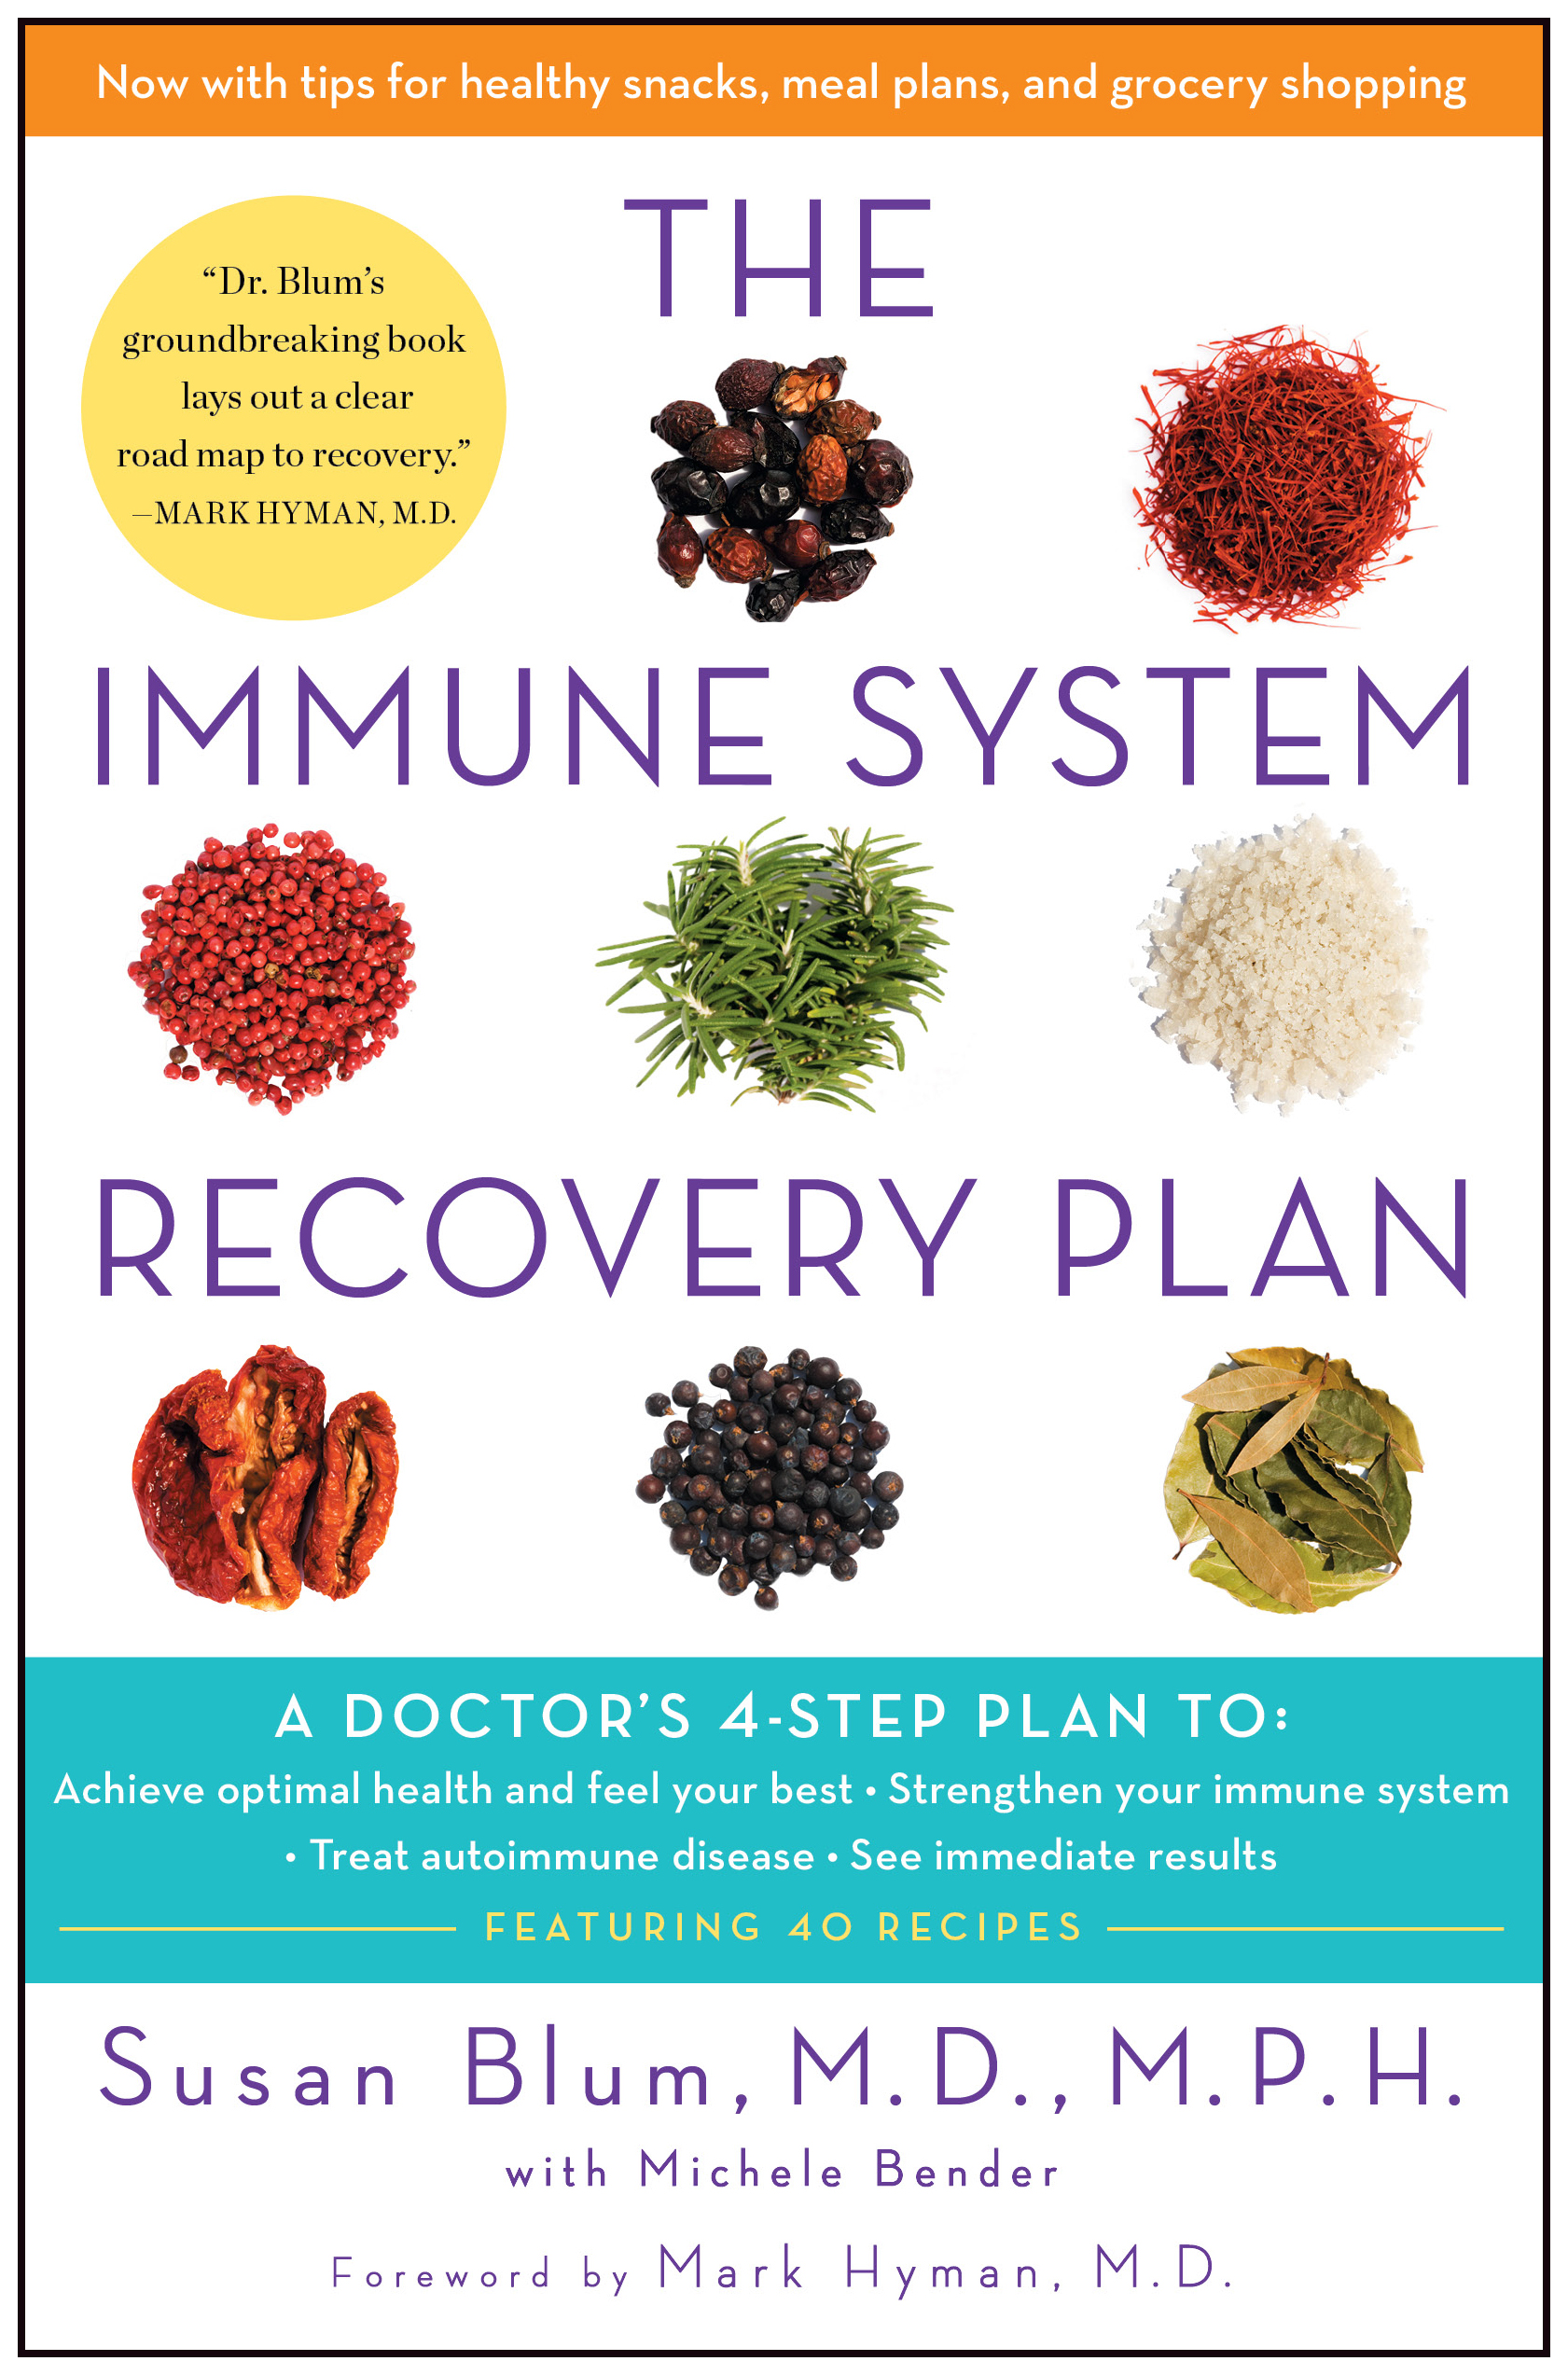 Immune-system-recovery-plan-9781451694994_hr